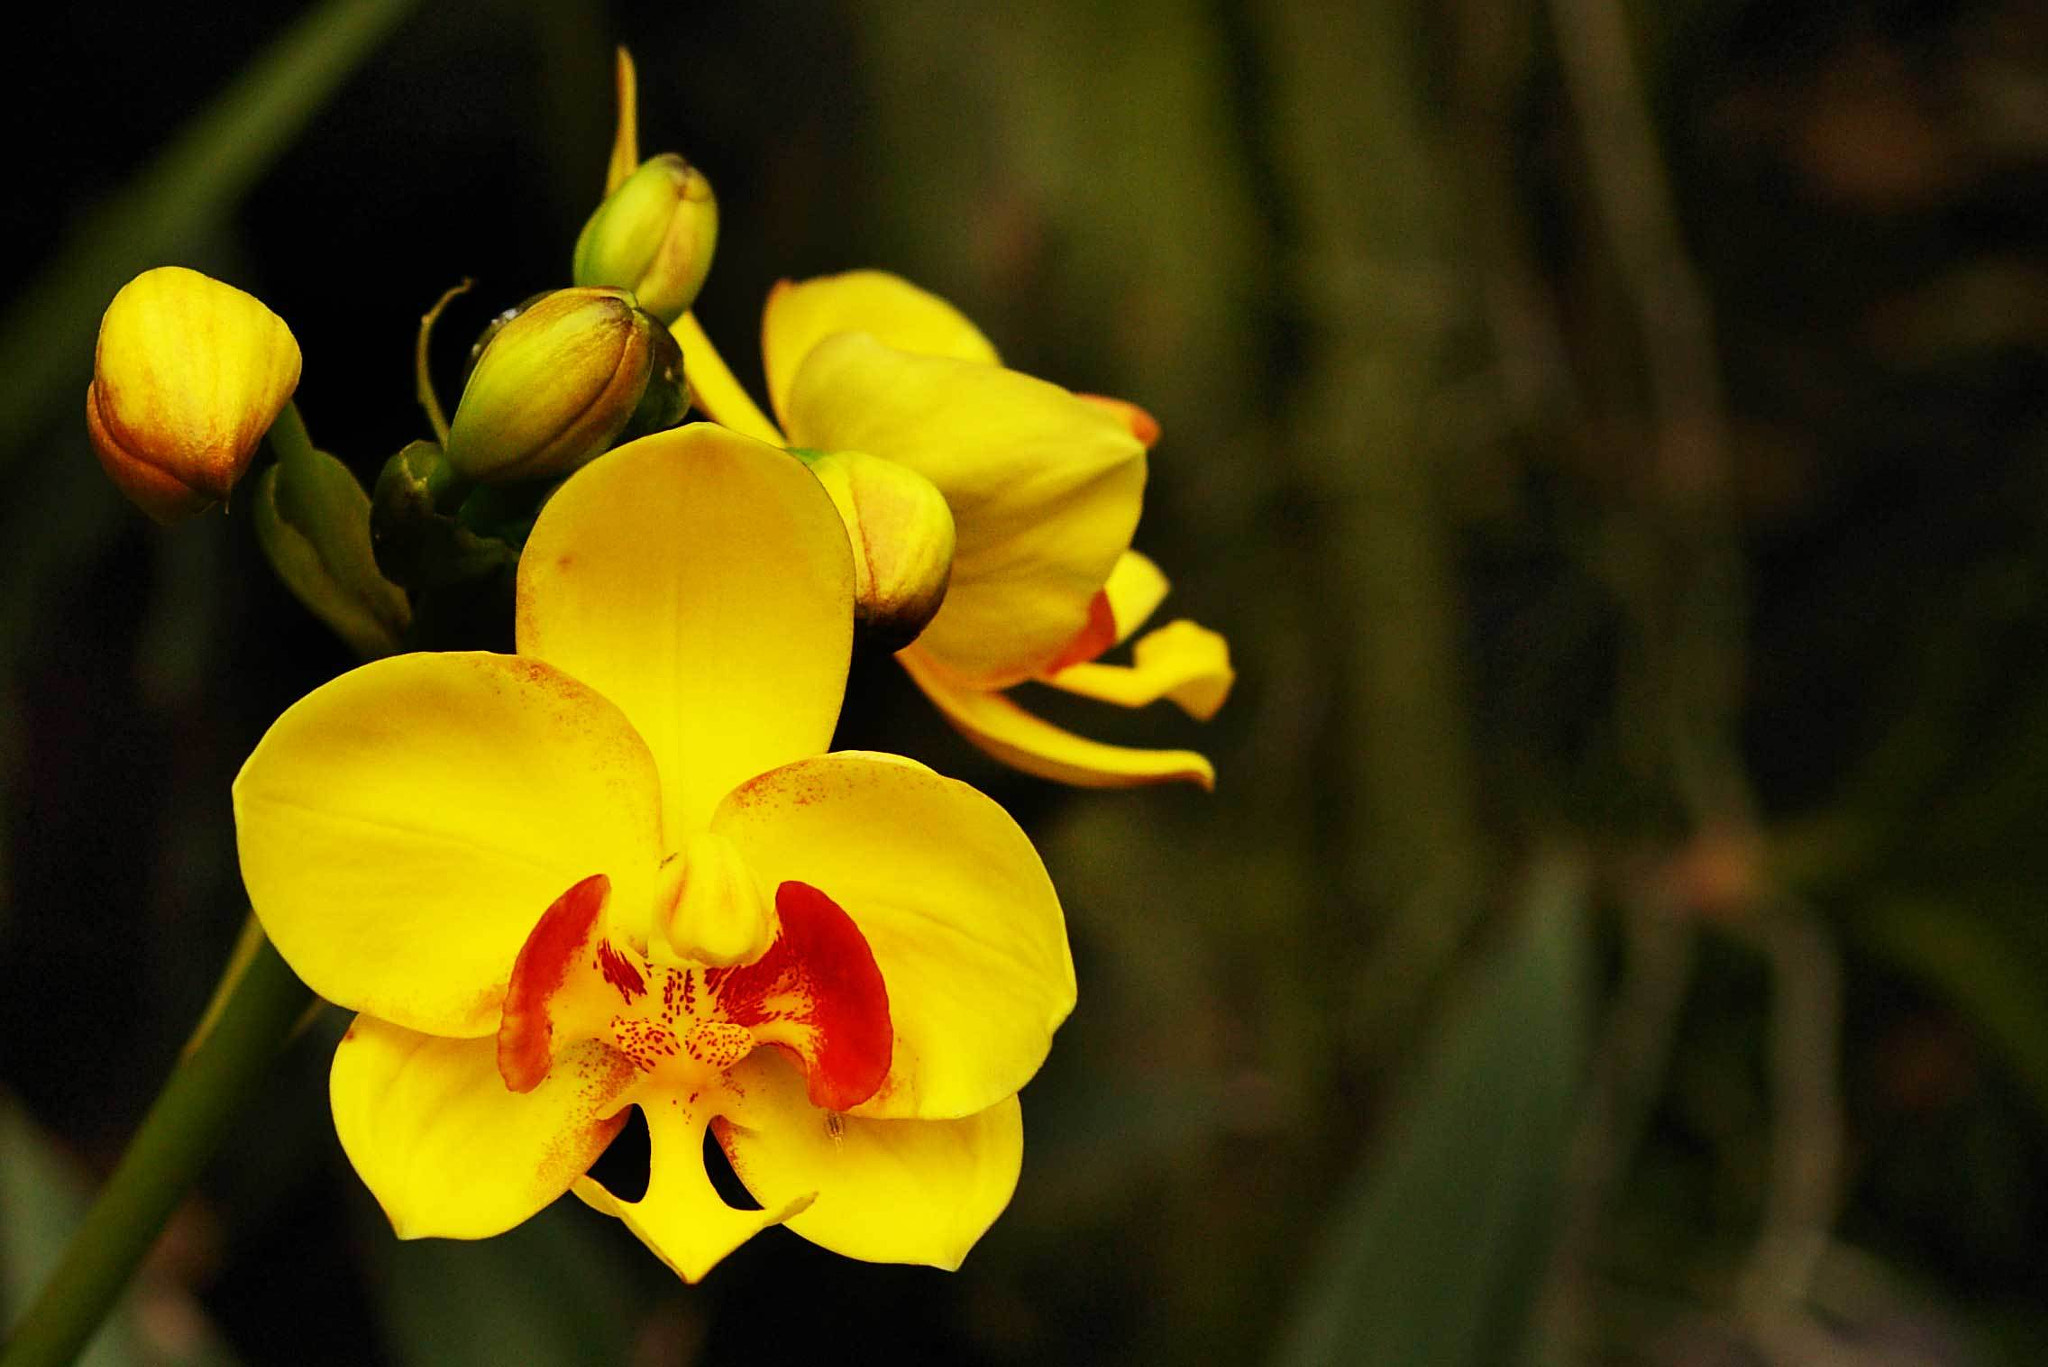 Photograph Orchid by Sivakumar Gopalakrishnan on 500px